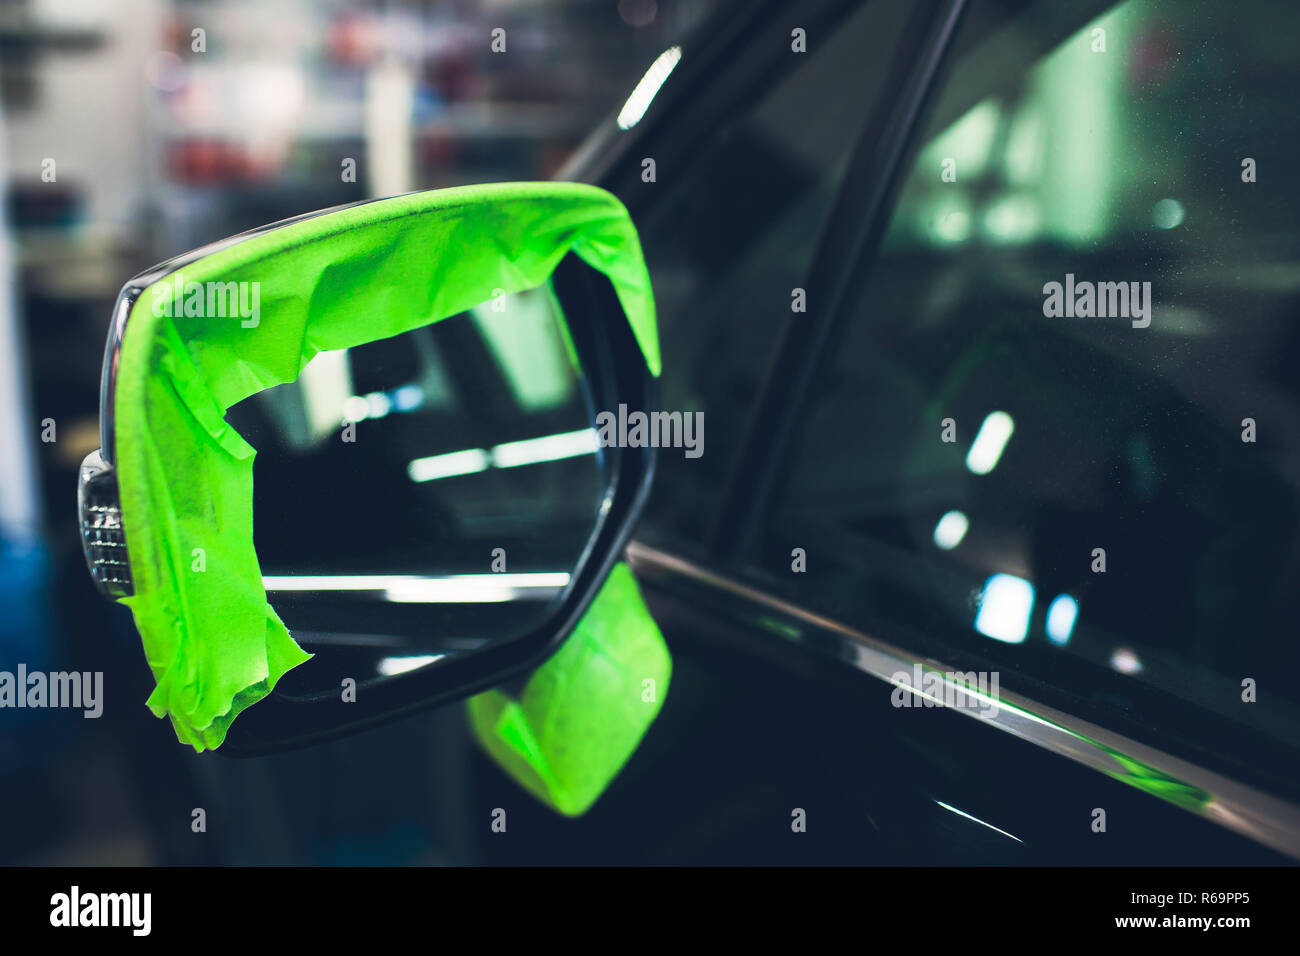 Car detailing - Hands with orbital polisher in auto repair shop - Stock Image